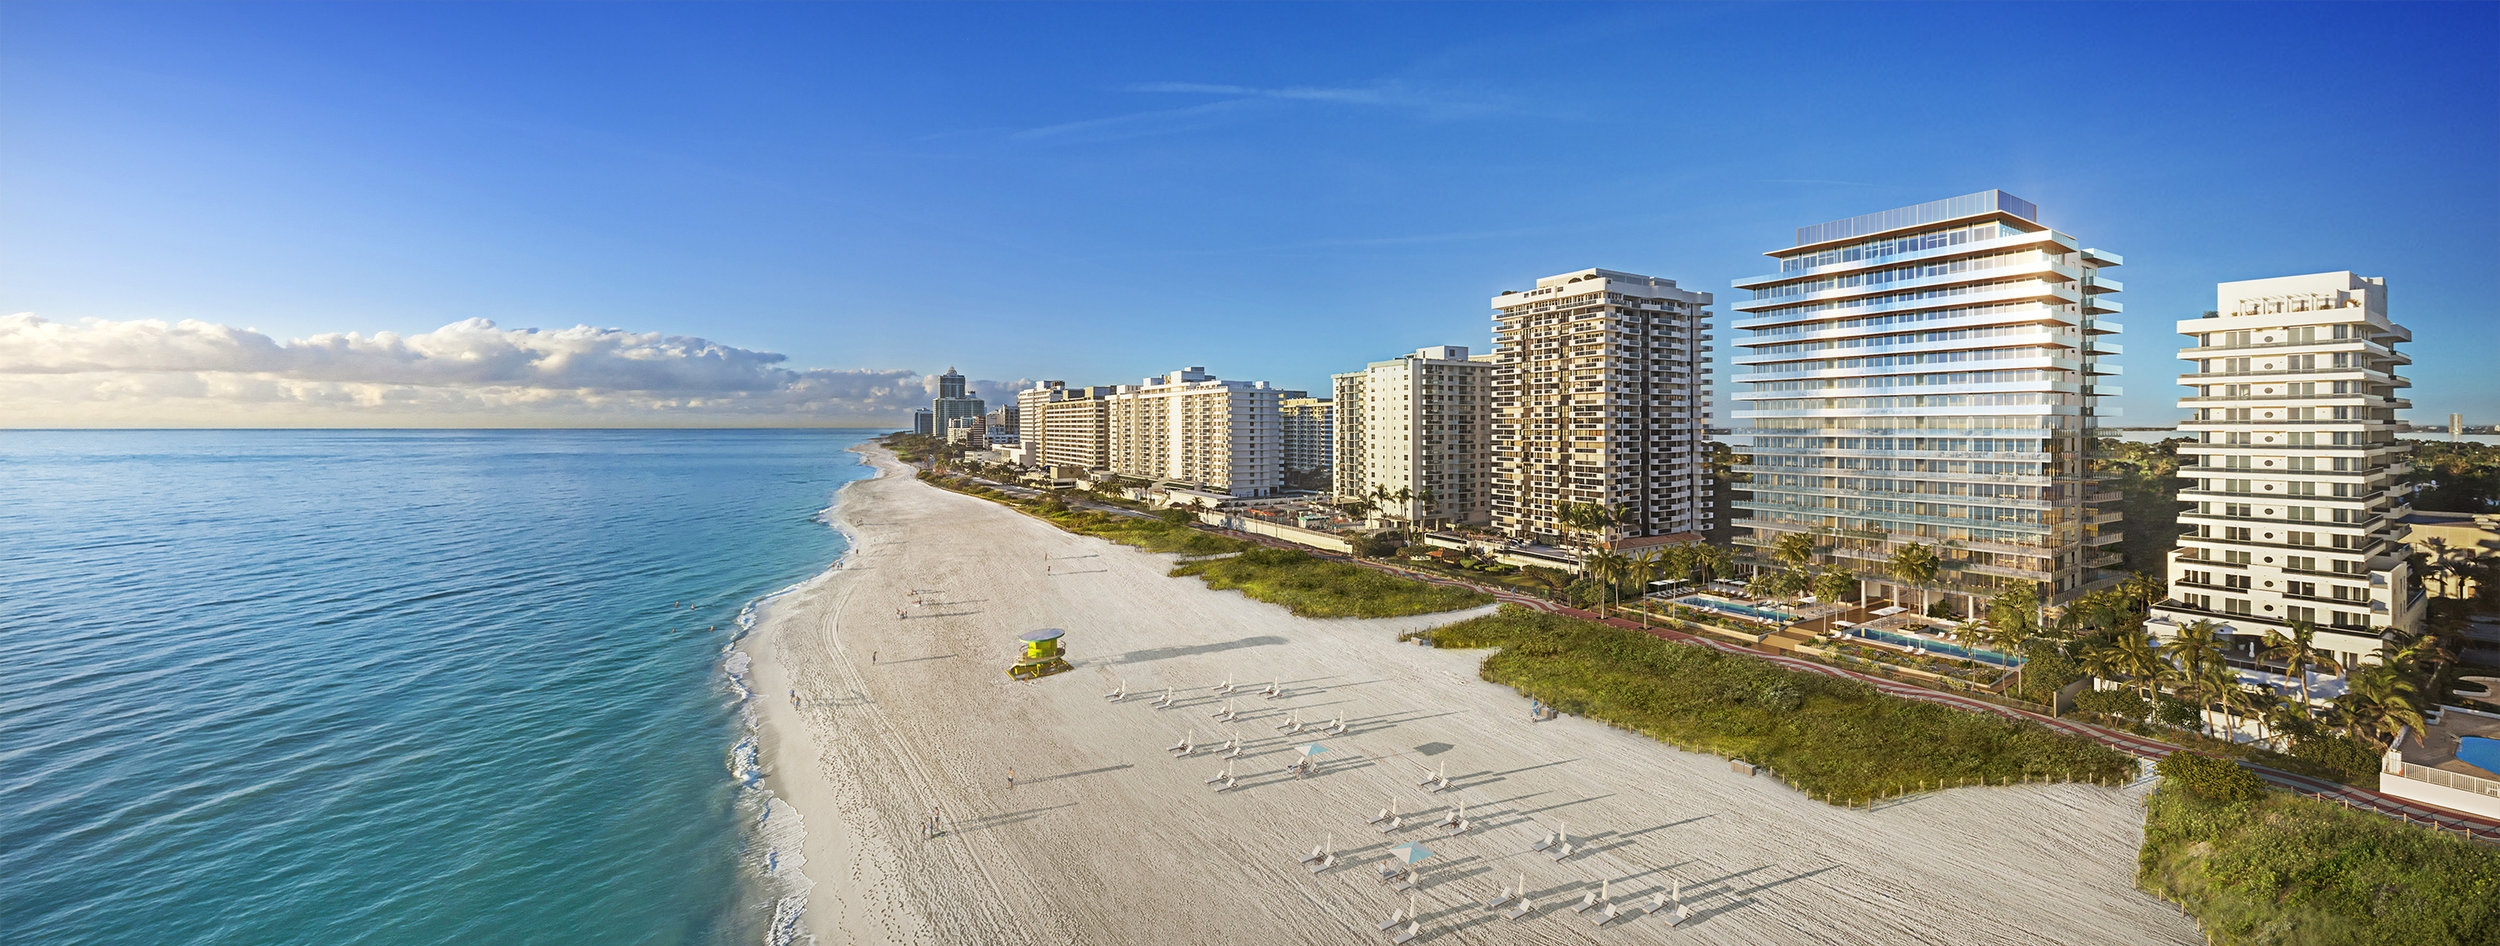 57 Ocean Miami Beach Shore Line